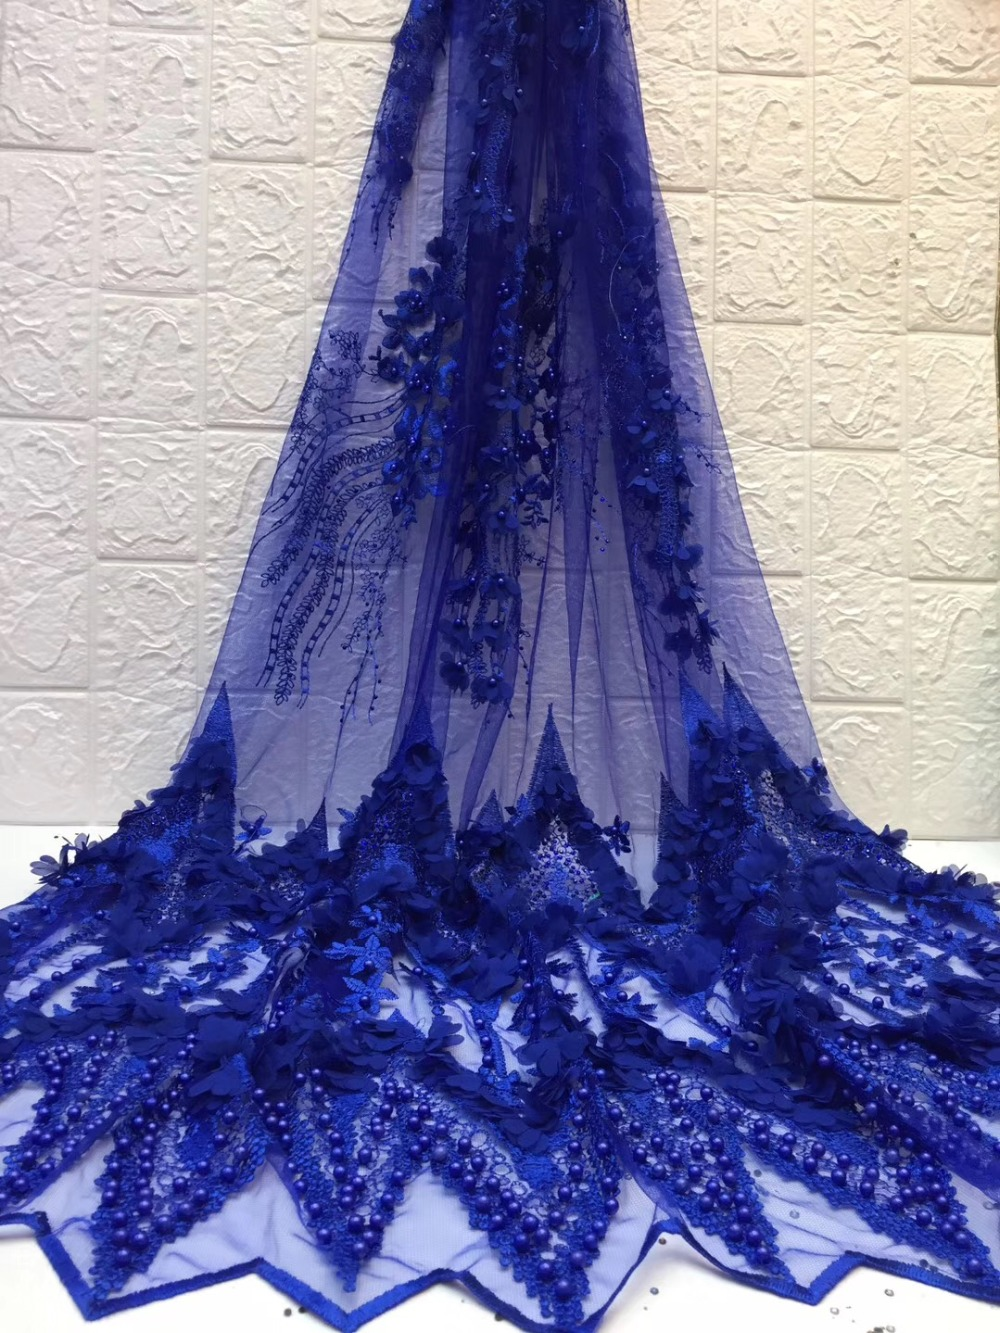 African Lace Fabric 2019 High Quality Embroidered Tulle Fabric Flowers Lace Nigerian Lace Fabrics For WeddingAfrican Lace Fabric 2019 High Quality Embroidered Tulle Fabric Flowers Lace Nigerian Lace Fabrics For Wedding